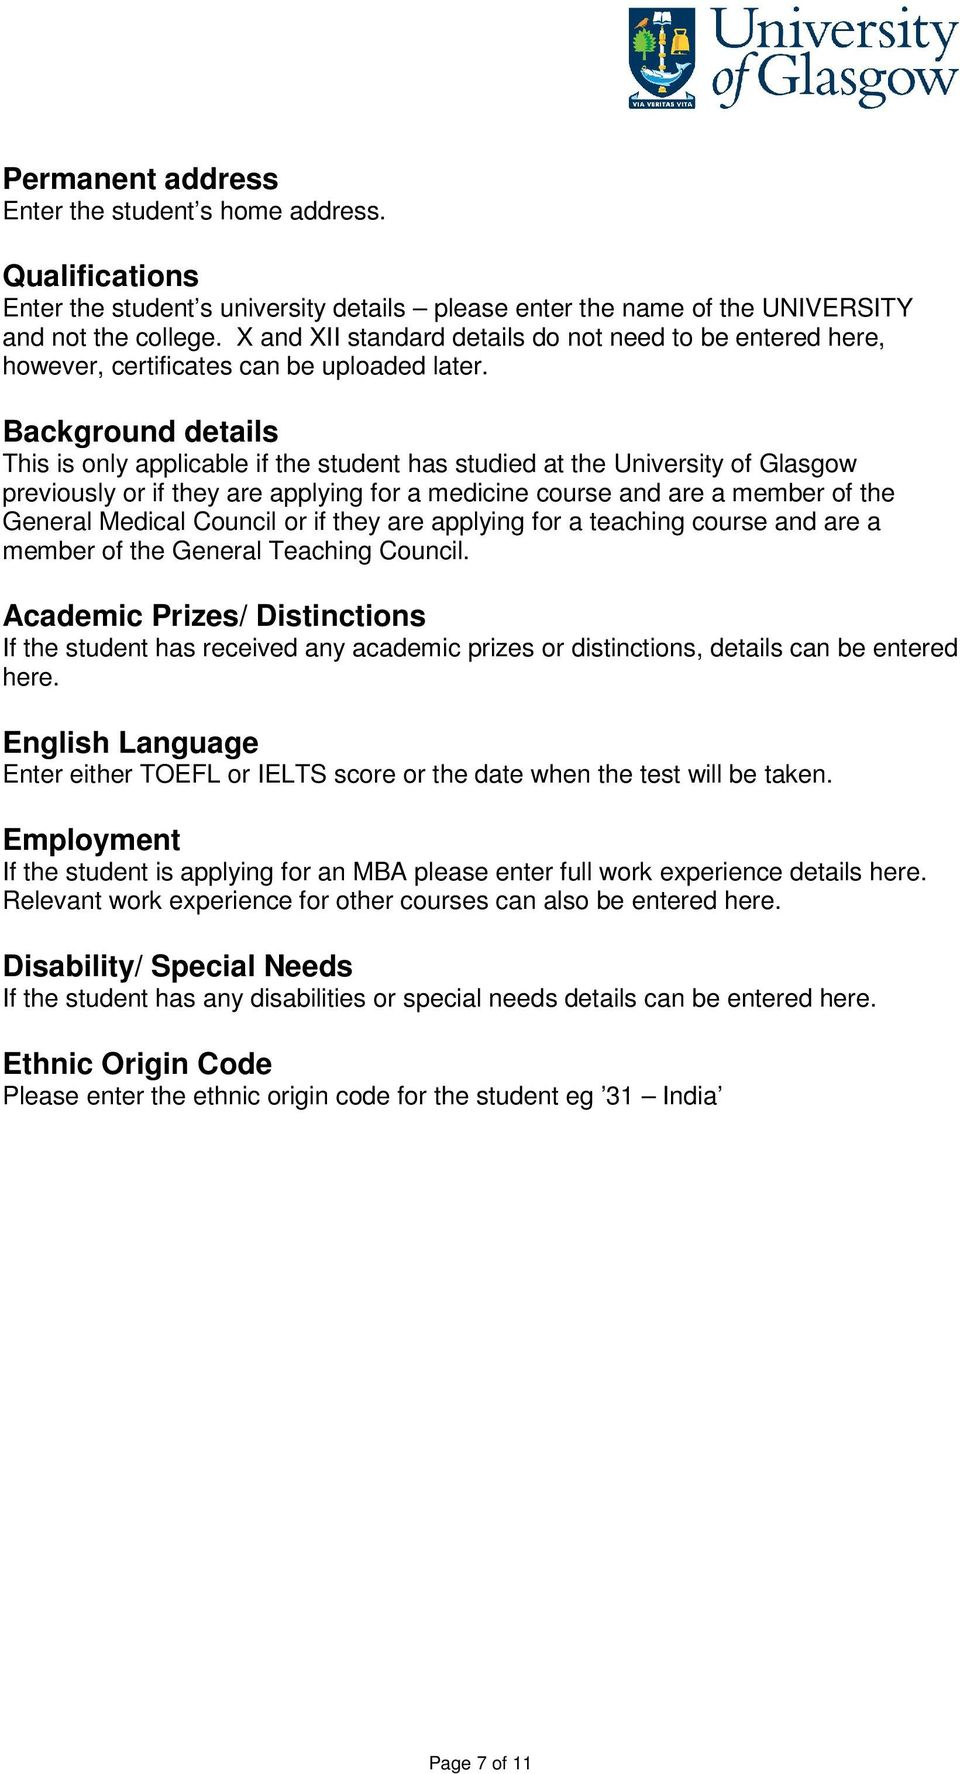 Background details This is only applicable if the student has studied at the University of Glasgow previously or if they are applying for a medicine course and are a member of the General Medical